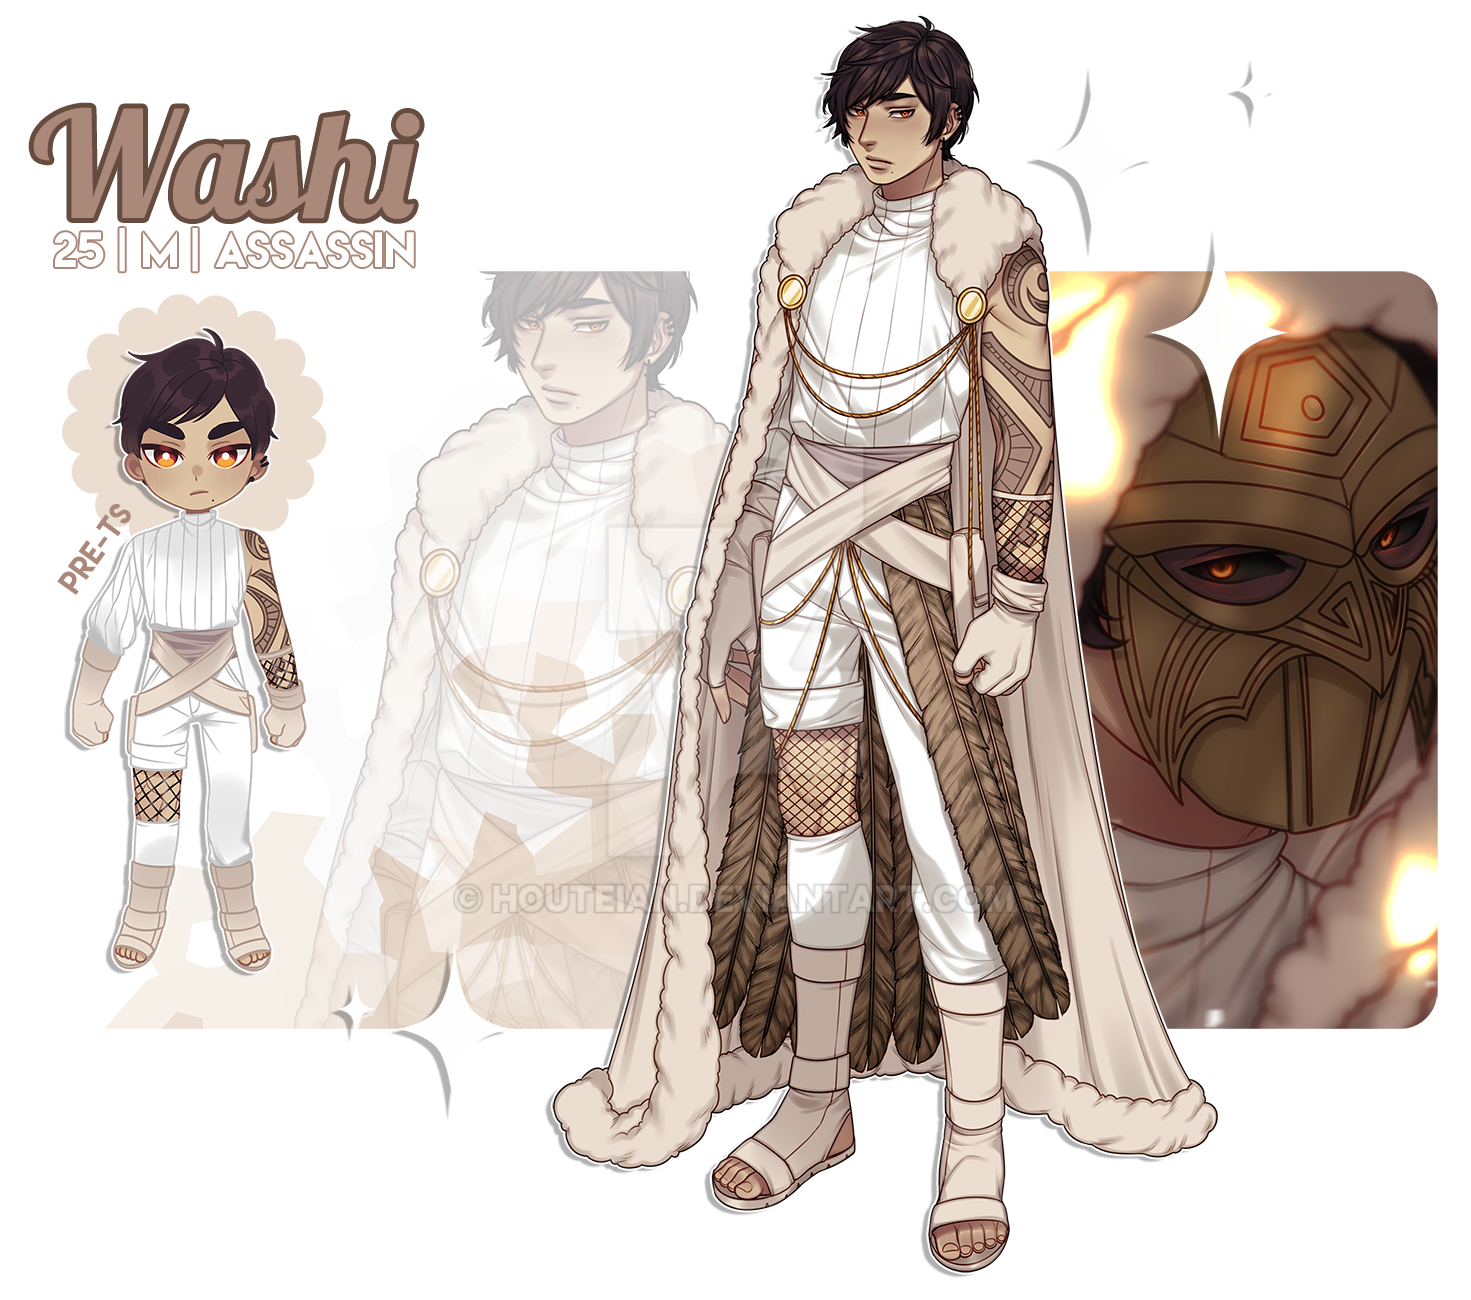 [NARUTO OC] Washi By Rieule On DeviantArt